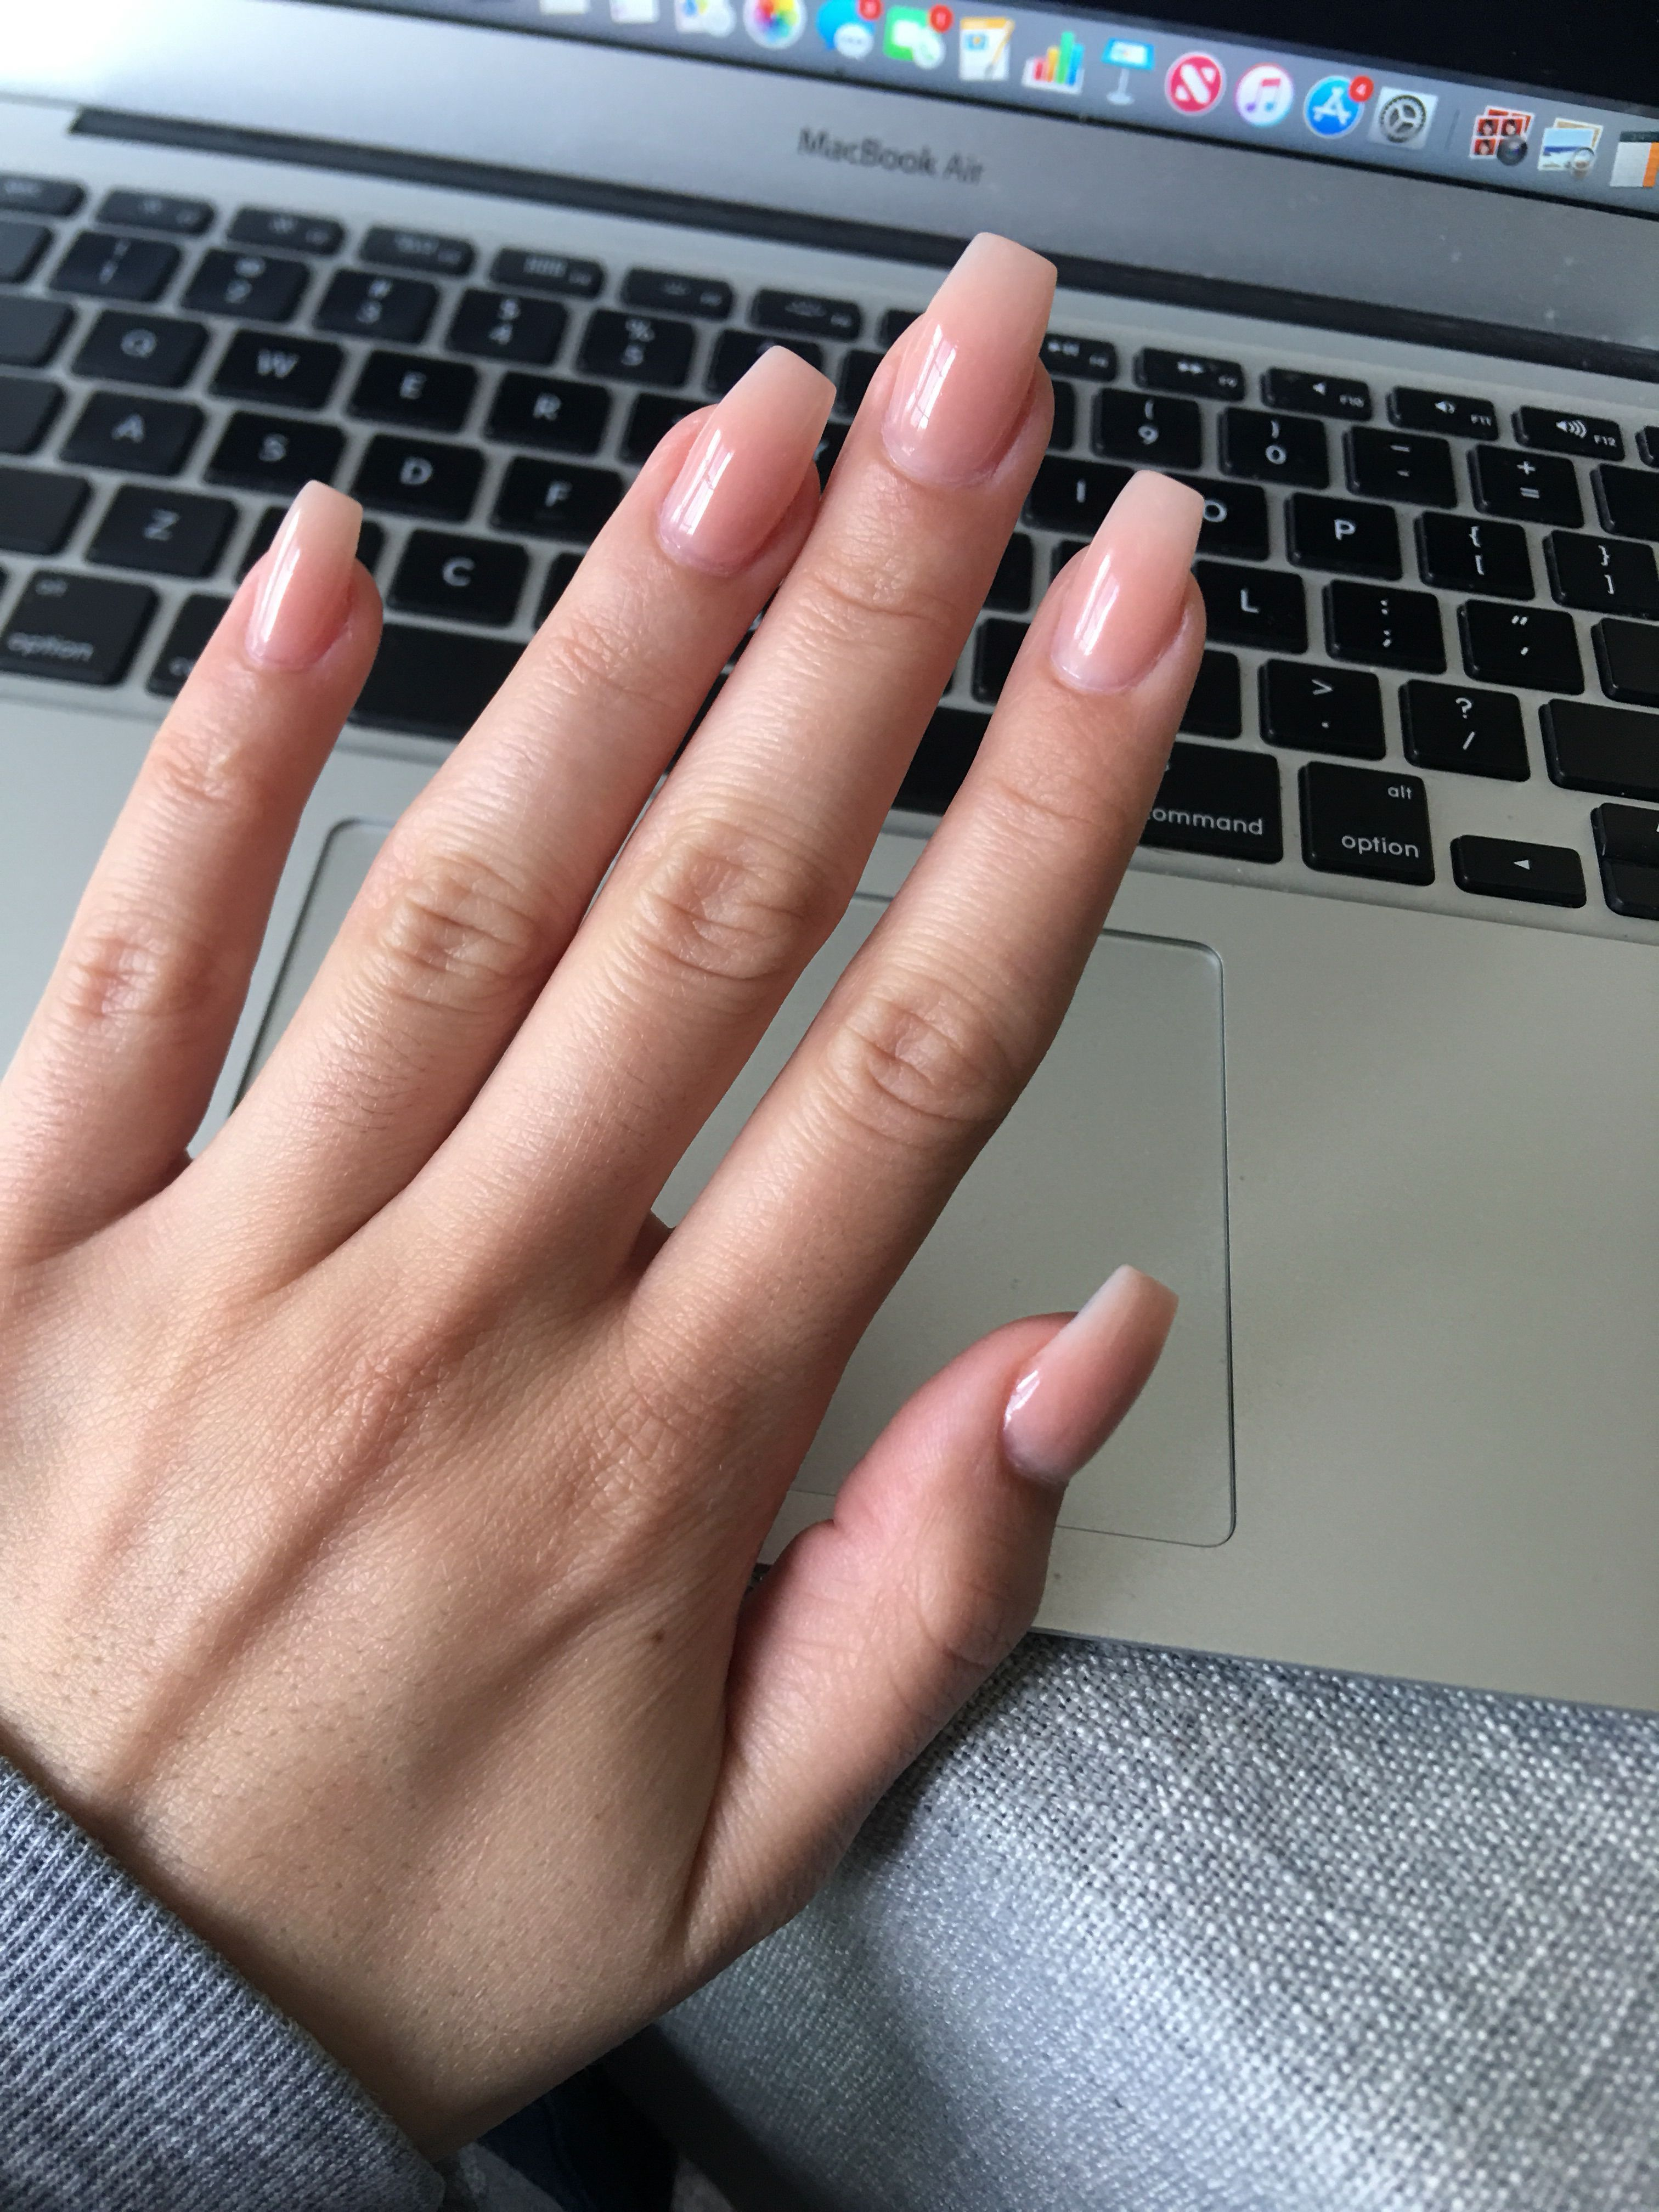 Natural Acrylic Extension Acrylic Extension On Natural Nails Soft Pink Powder Clear Gel Top Coat In 2020 Pink Gel Nails Natural Acrylic Nails Pink Acrylic Nails